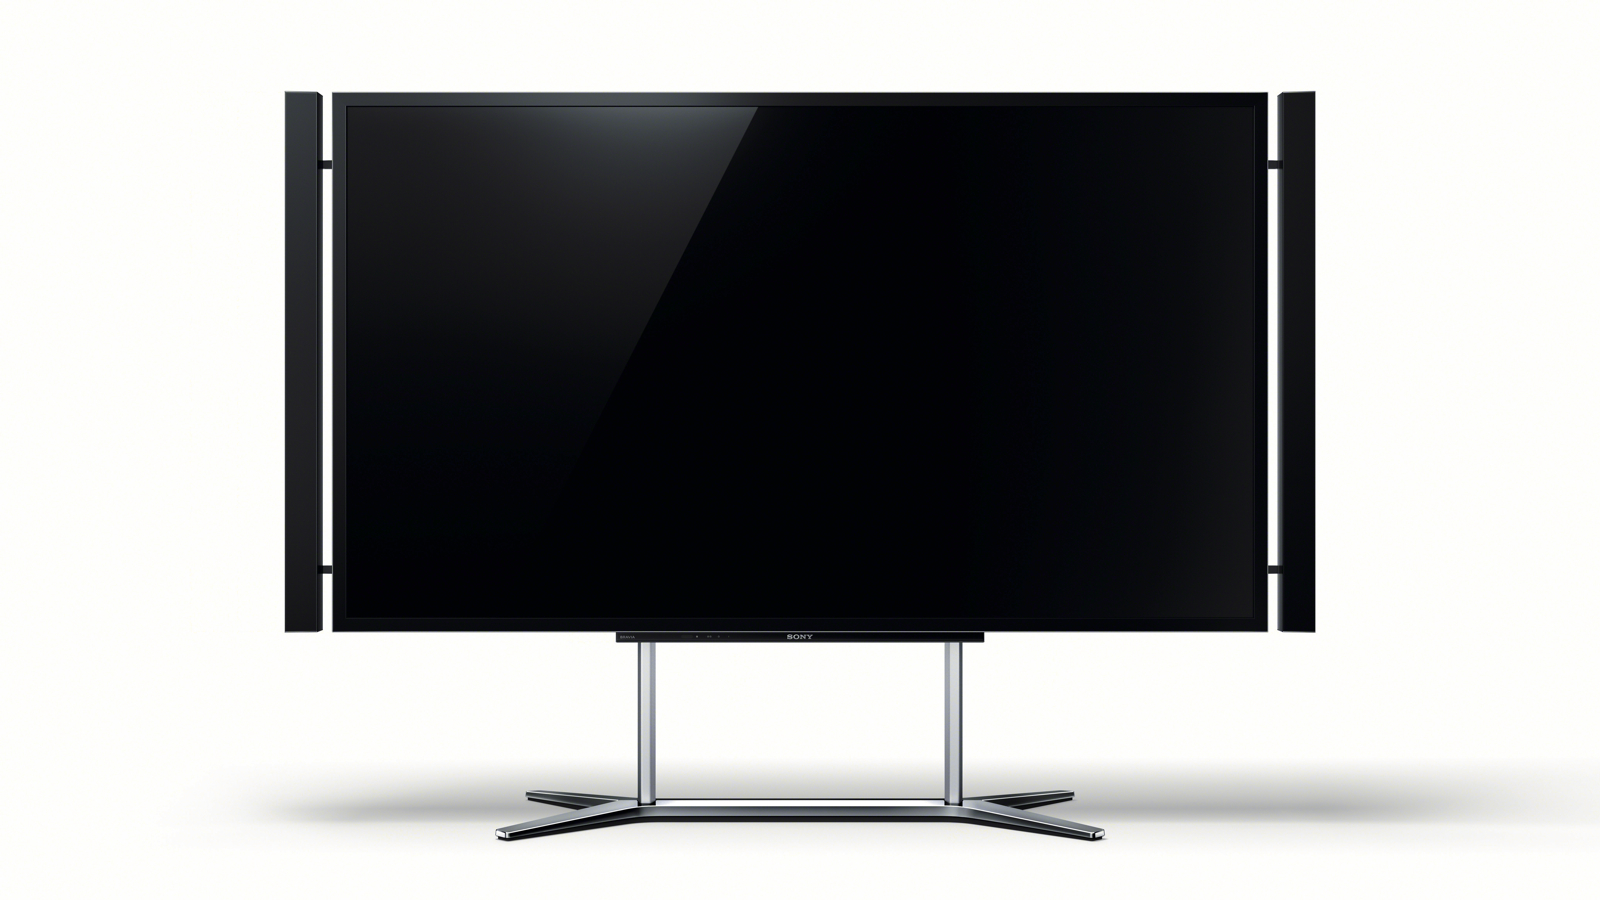 expensive 4k sony tv now comes with 4k movies gizmodo. Black Bedroom Furniture Sets. Home Design Ideas